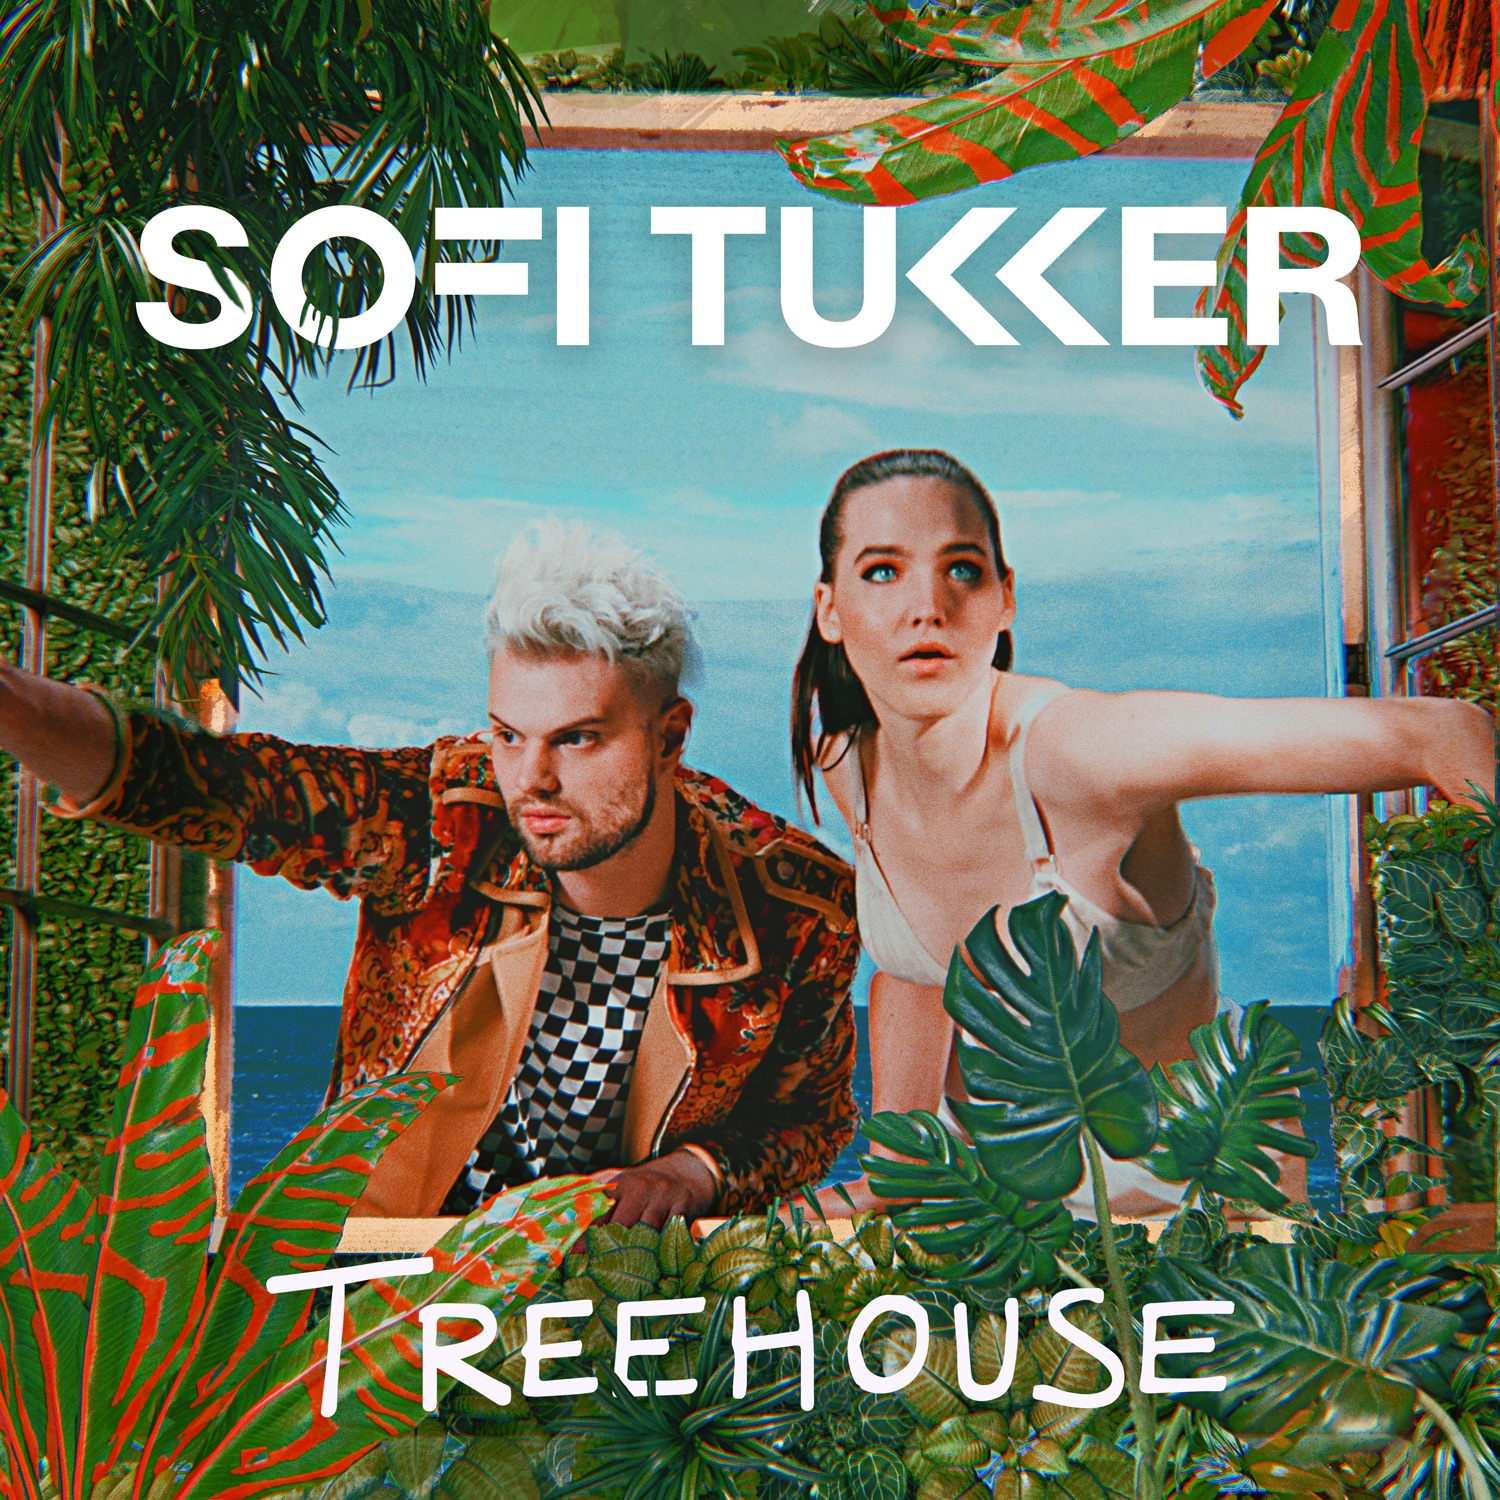 TREEHOUSE - Our Grammy-Nominated Debut Album